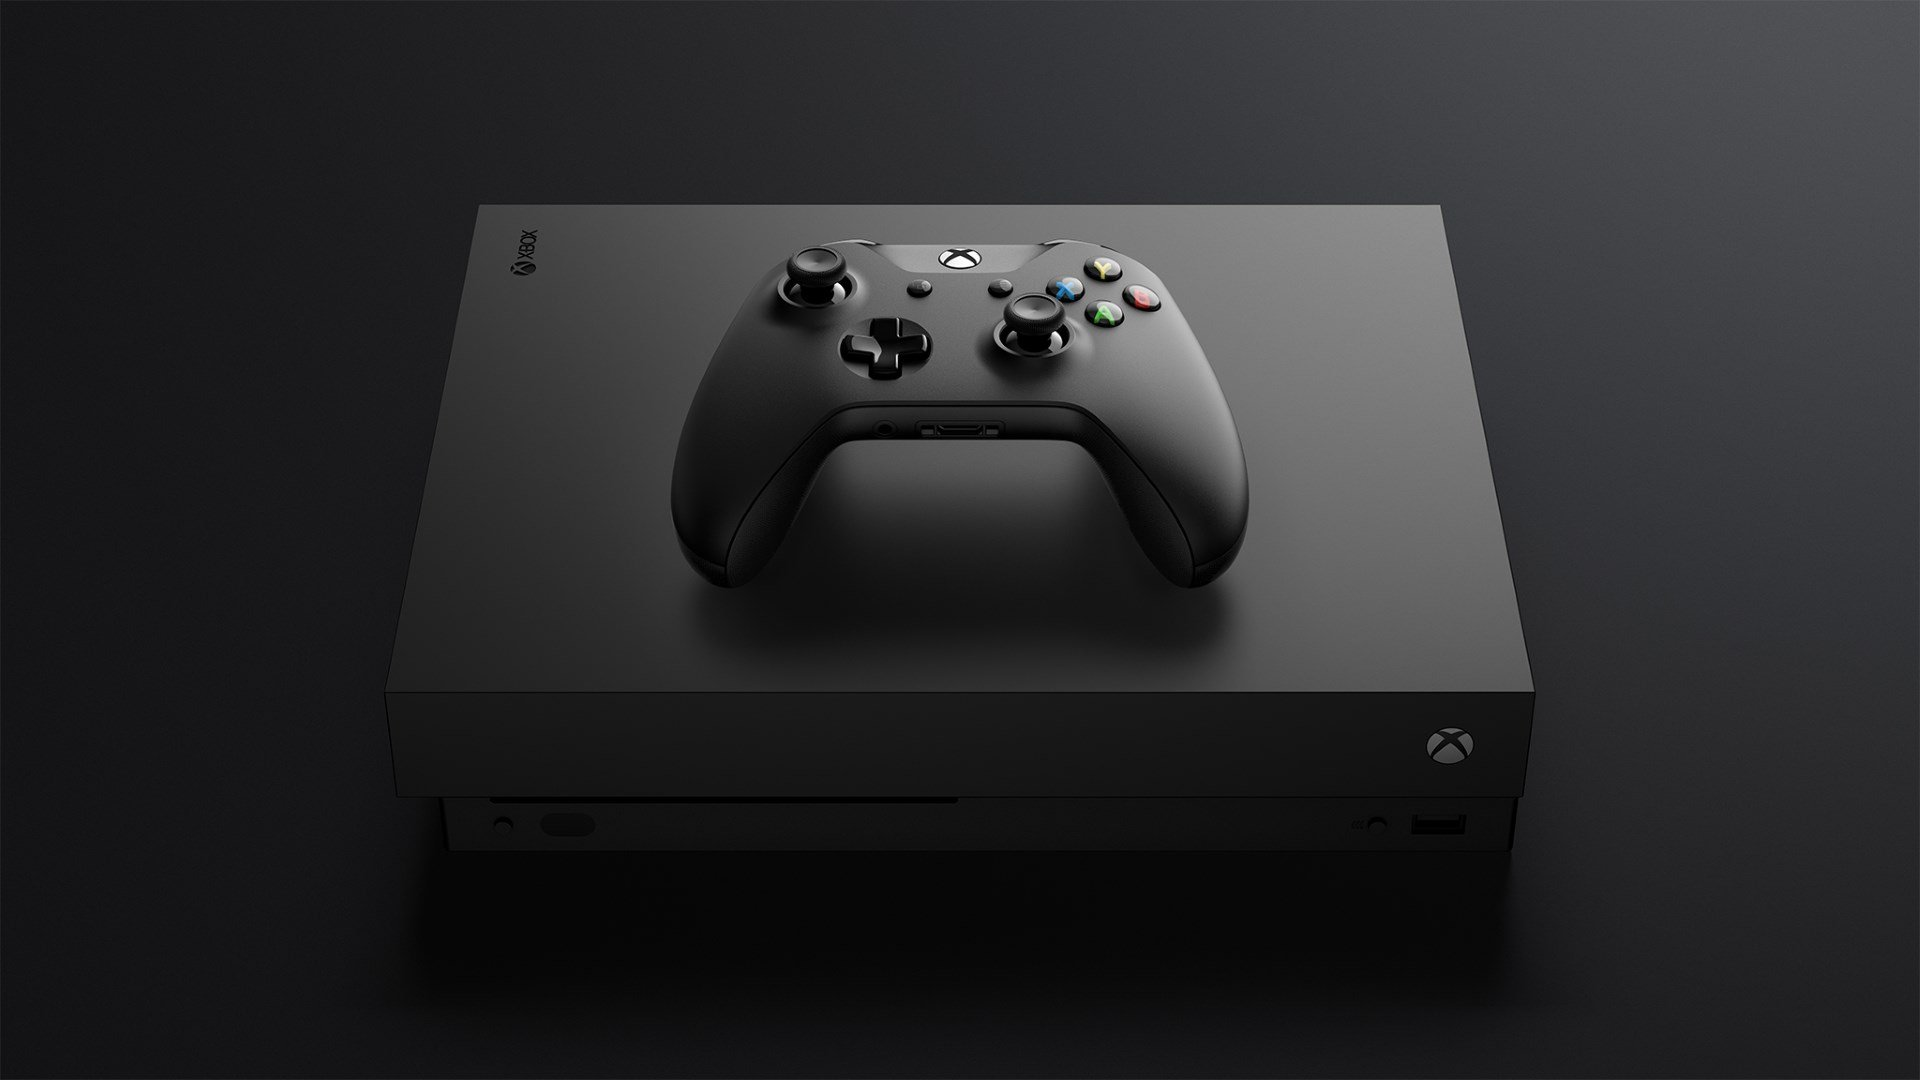 The best Xbox One X deals for Black Friday 2018 © Microsoft